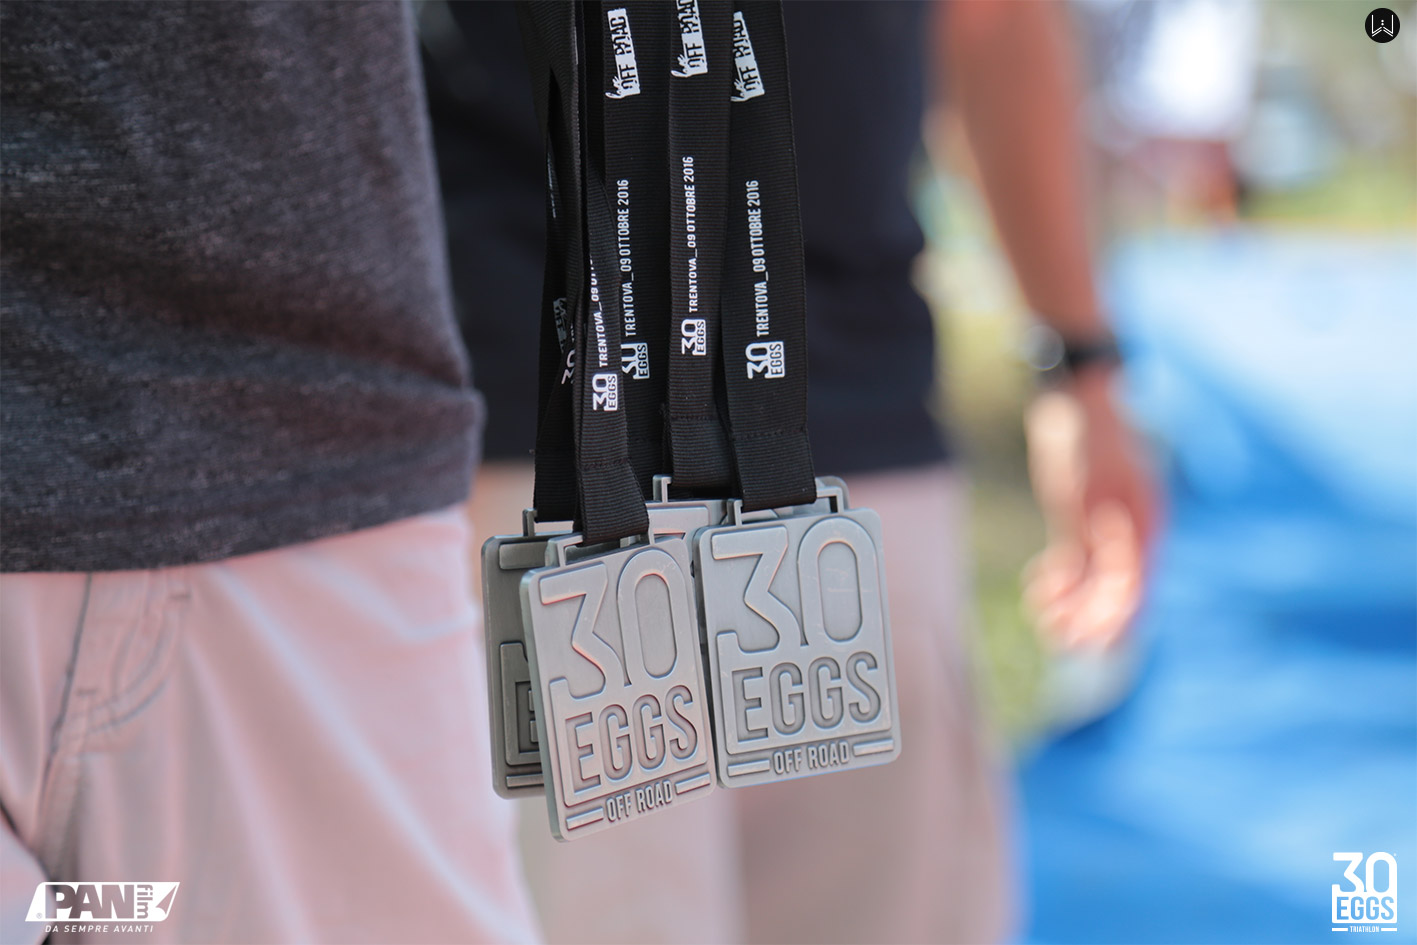 Medal - 30EGGS Triathlon Cross Super Sprint